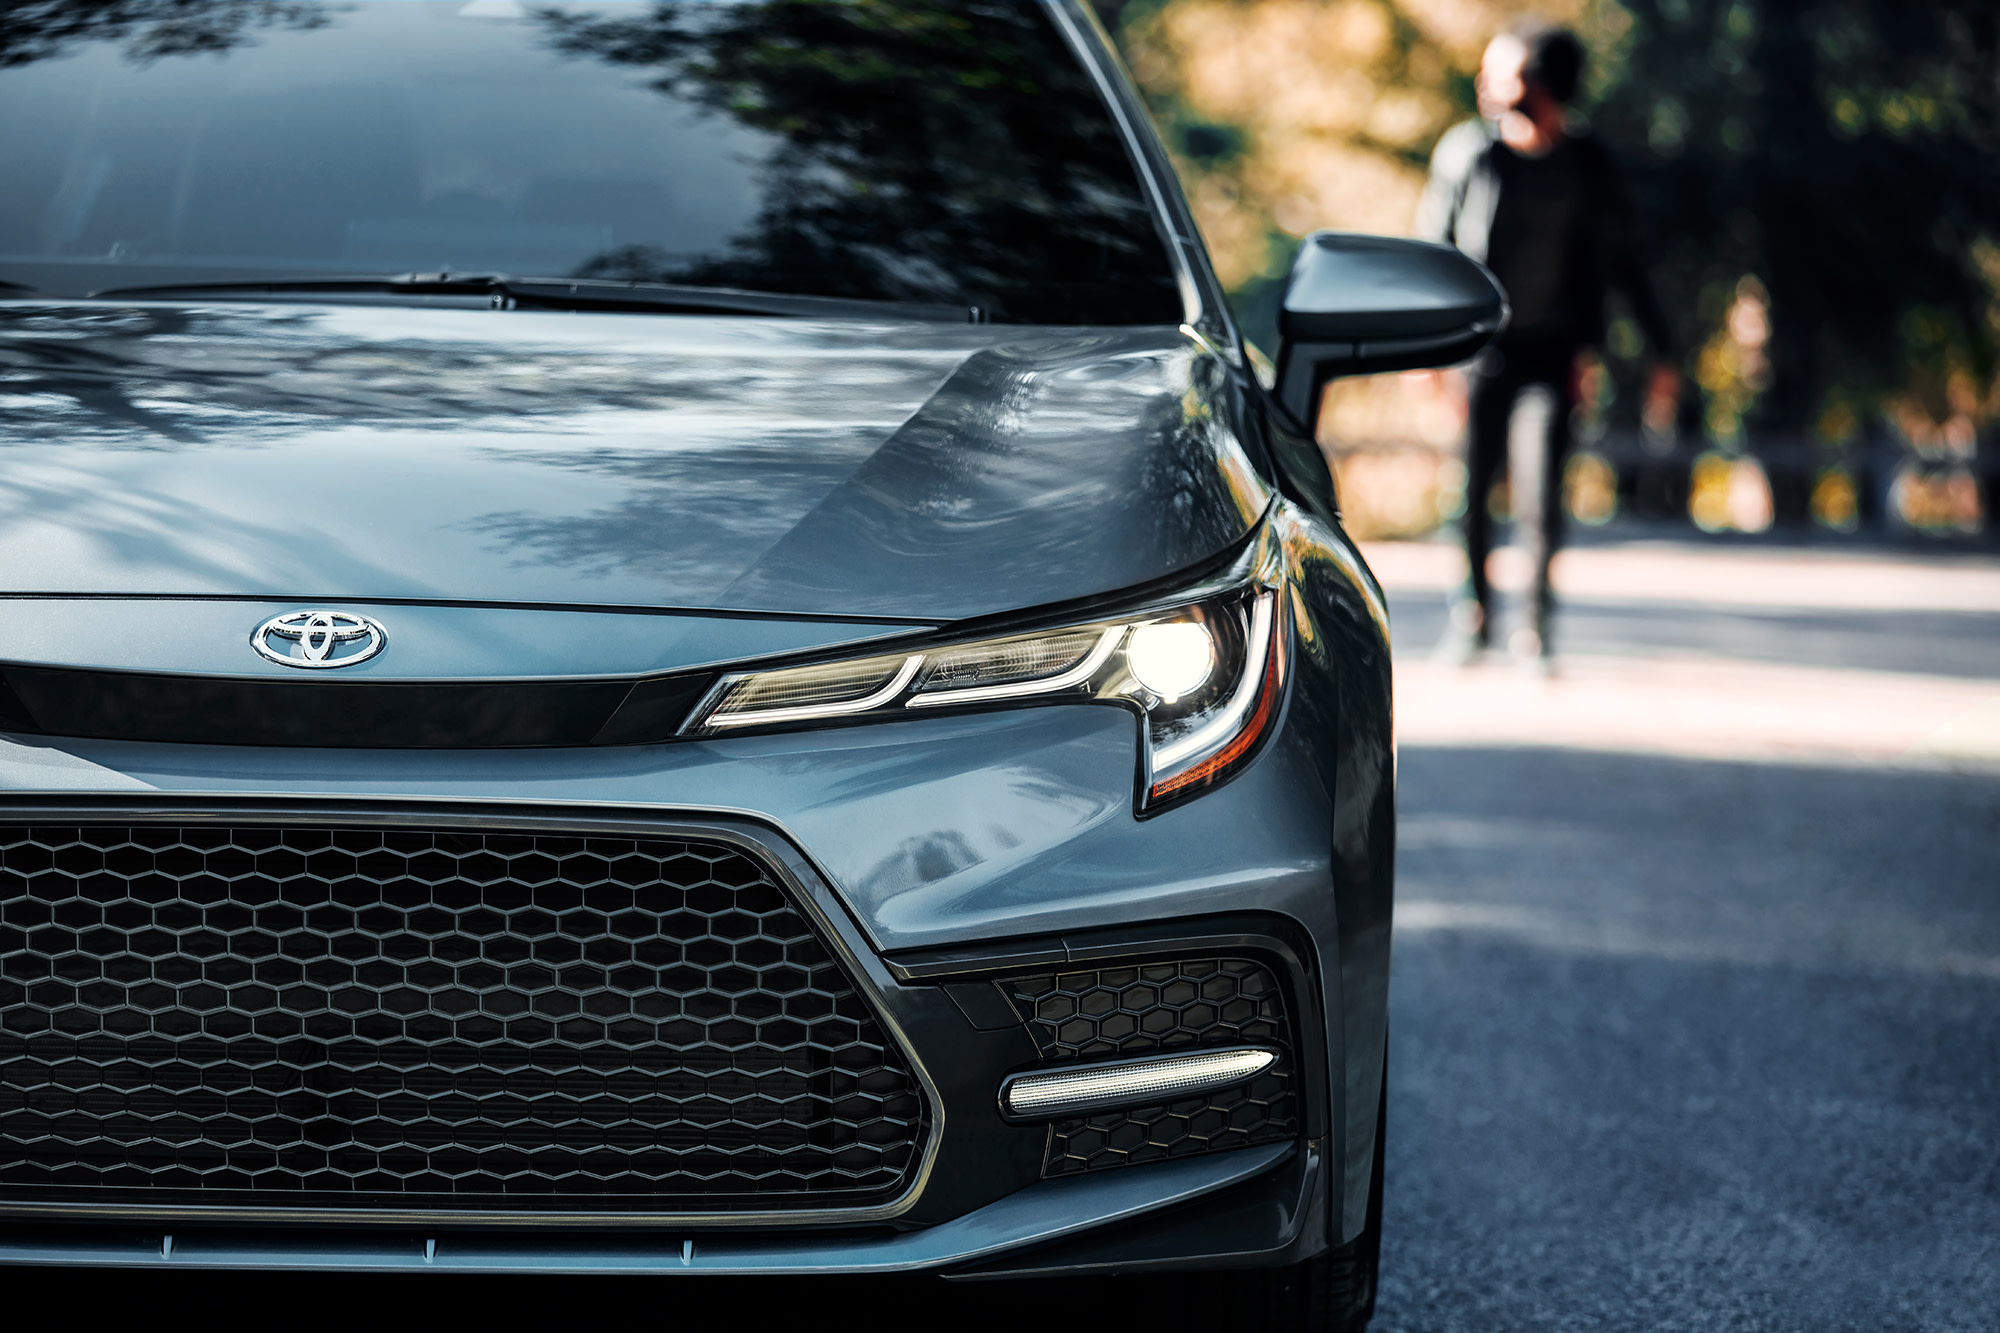 Team Toyota of Glen Mills is a Toyota Dealership near Kennett Square PA   Closeup of gray 2020 Toyota Corolla front view